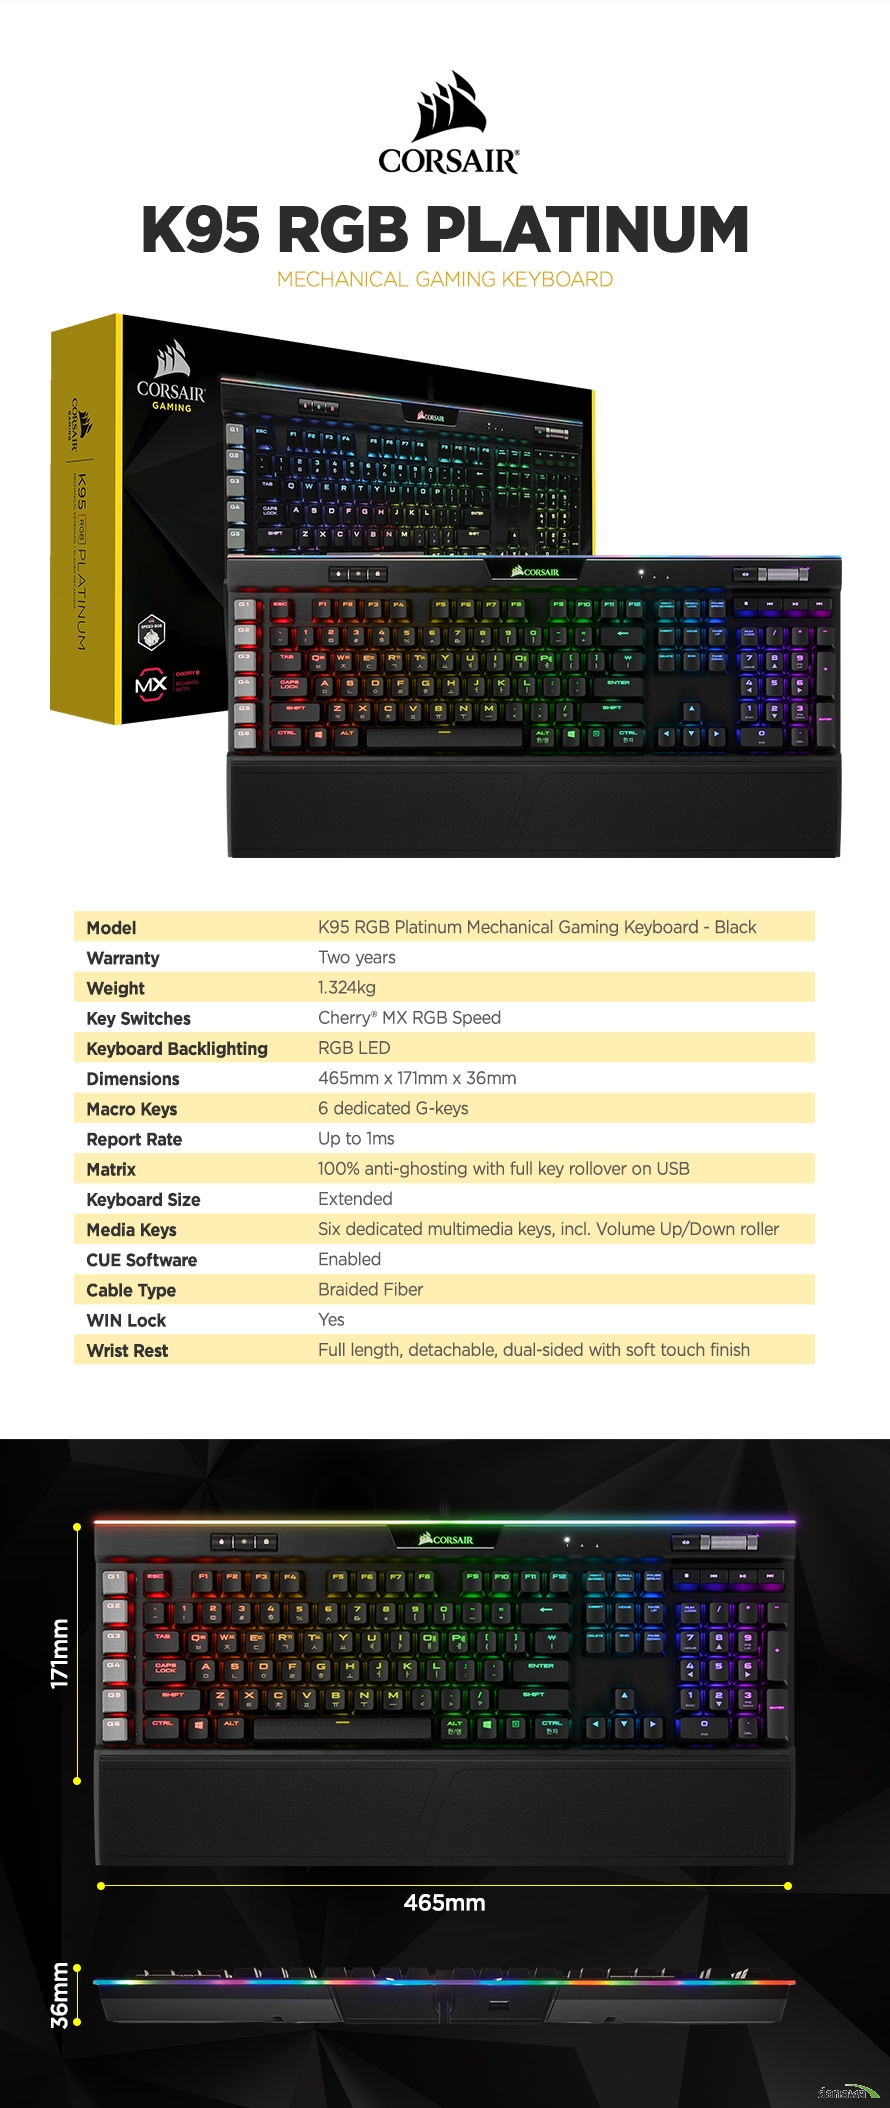 제품 사양Model	K95 RGB Platinum Mechanical Gaming Keyboard - BlackWarranty	Two yearsWeight	1.324kgKey Switches	Cherry® MX RGB SpeedKeyboard Backlighting	RGB LEDDimensions	465mm x 171mm x 36mmMacro Keys	6 dedicated G-keysReport Rate	Up to 1msMatrix	100% anti-ghosting with full key rollover on USBKeyboard Size	ExtendedMedia Keys	Six dedicated multimedia keys, incl. Volume Up/Down rollerCUE Software	EnabledCable Type	Braided FiberWIN Lock	YesWrist Rest	Full length, detachable, dual-sided with soft touch finish